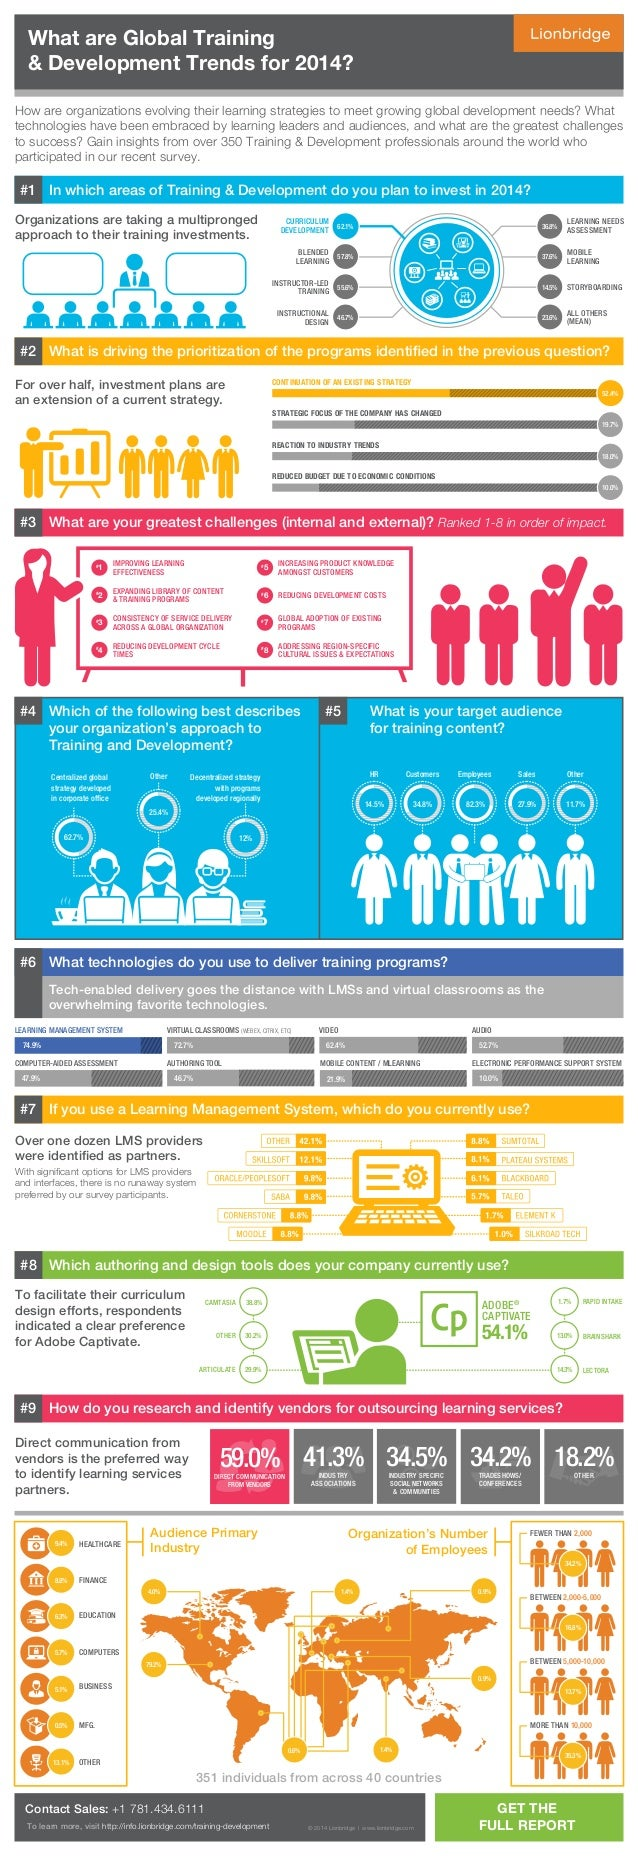 Organizations are taking a multipronged approach to their training investments. 34.5%INDUSTRY SPECIFIC SOCIAL NETWORKS & C...